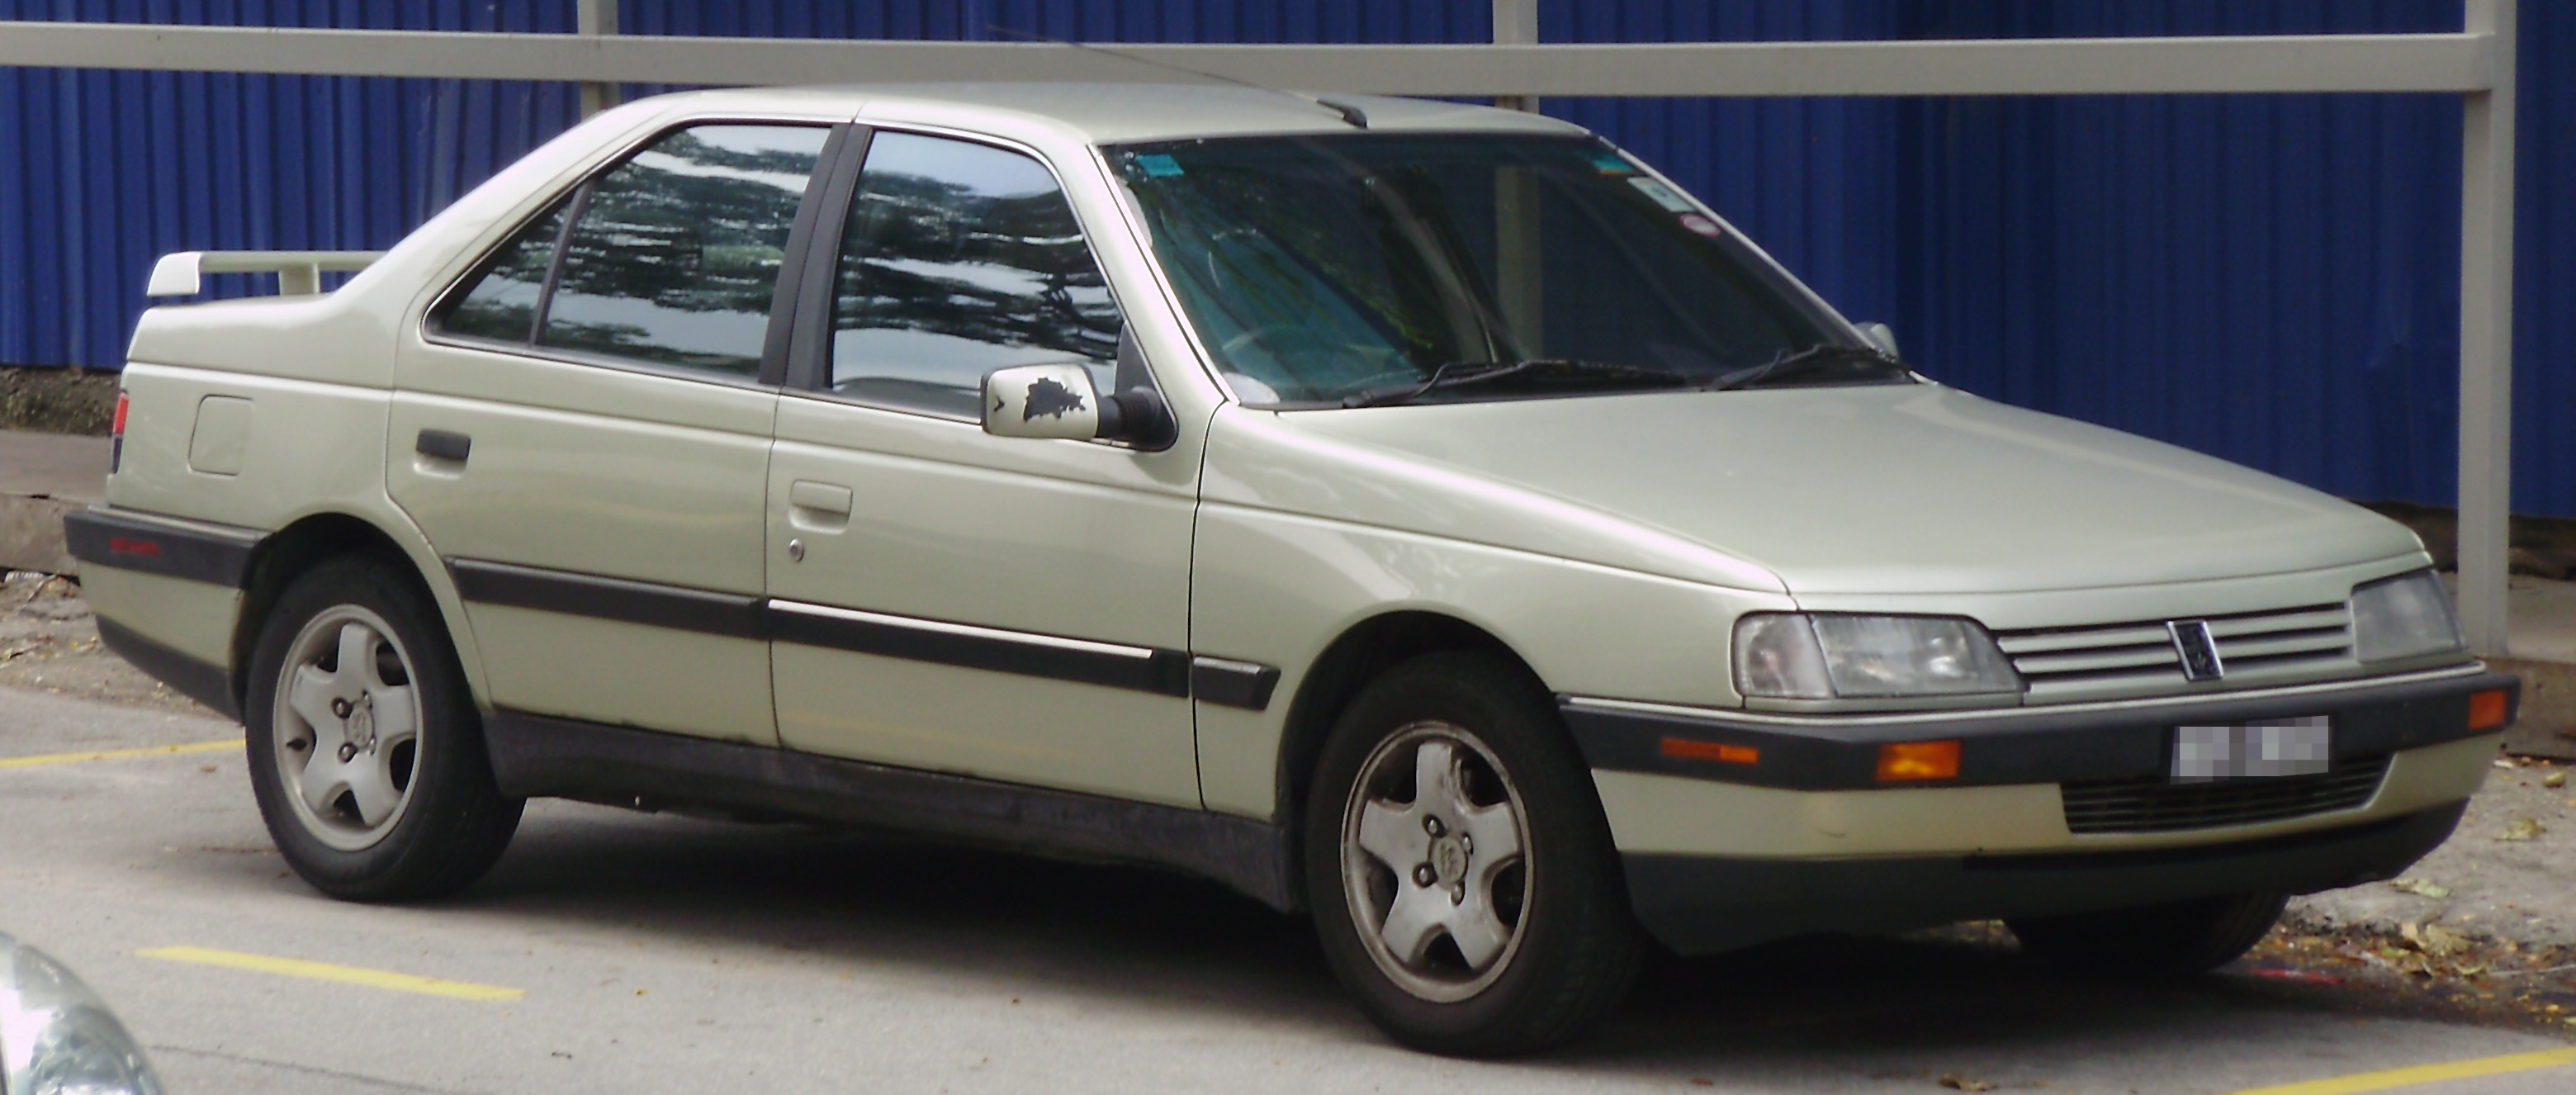 File Peugeot 405 First Facelift Front Kuala Lumpur